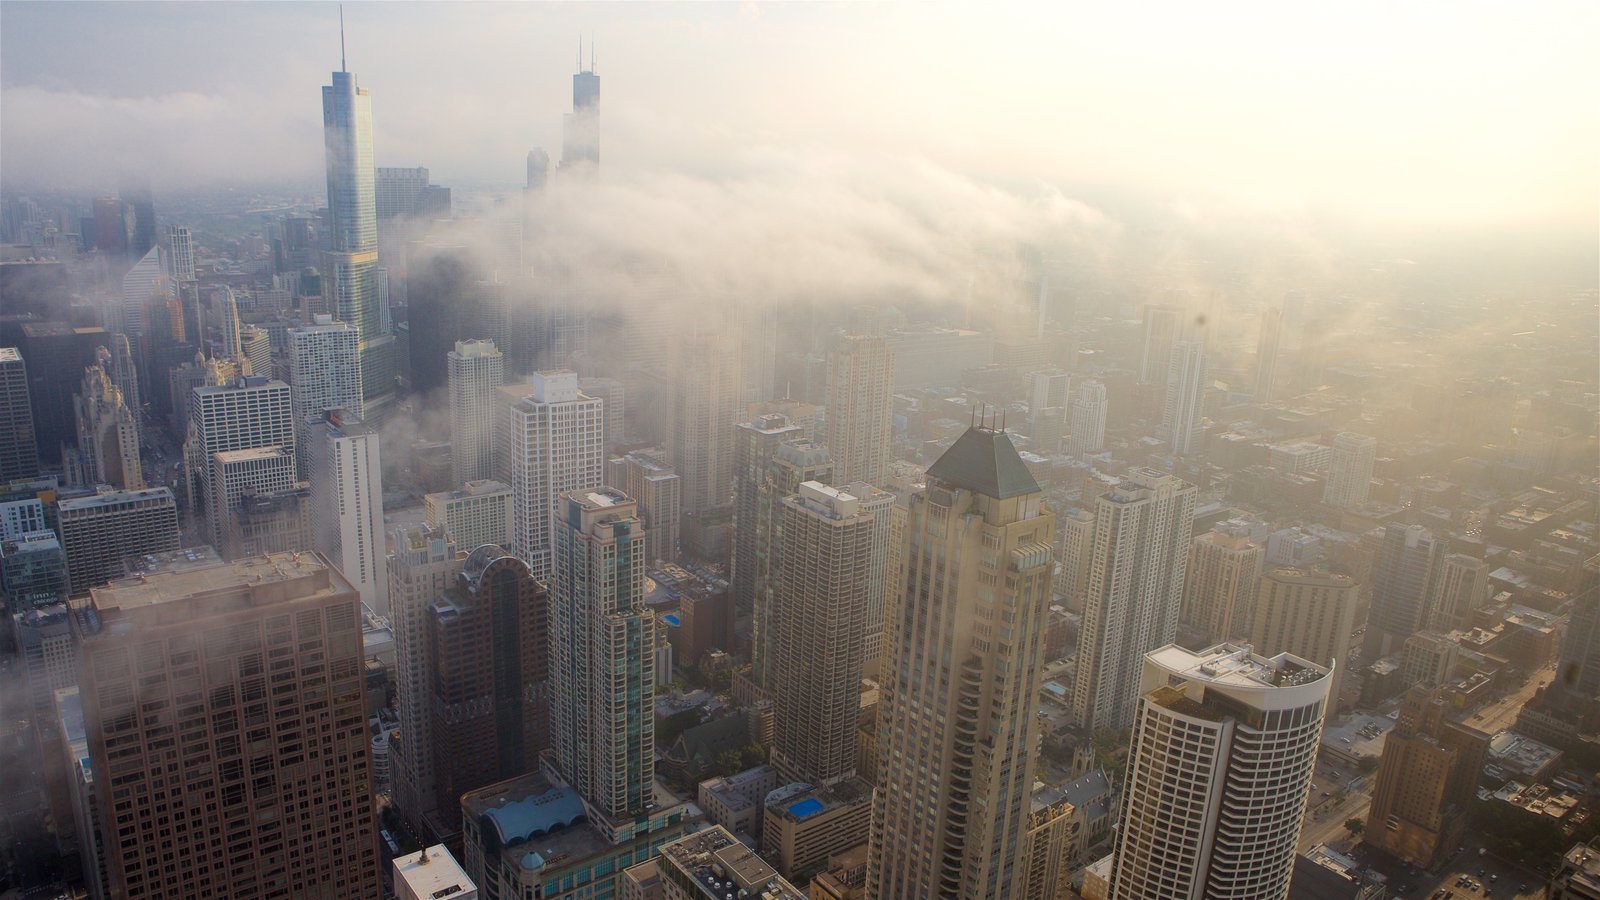 Willis Tower featuring a skyscraper, mist or fog and a city